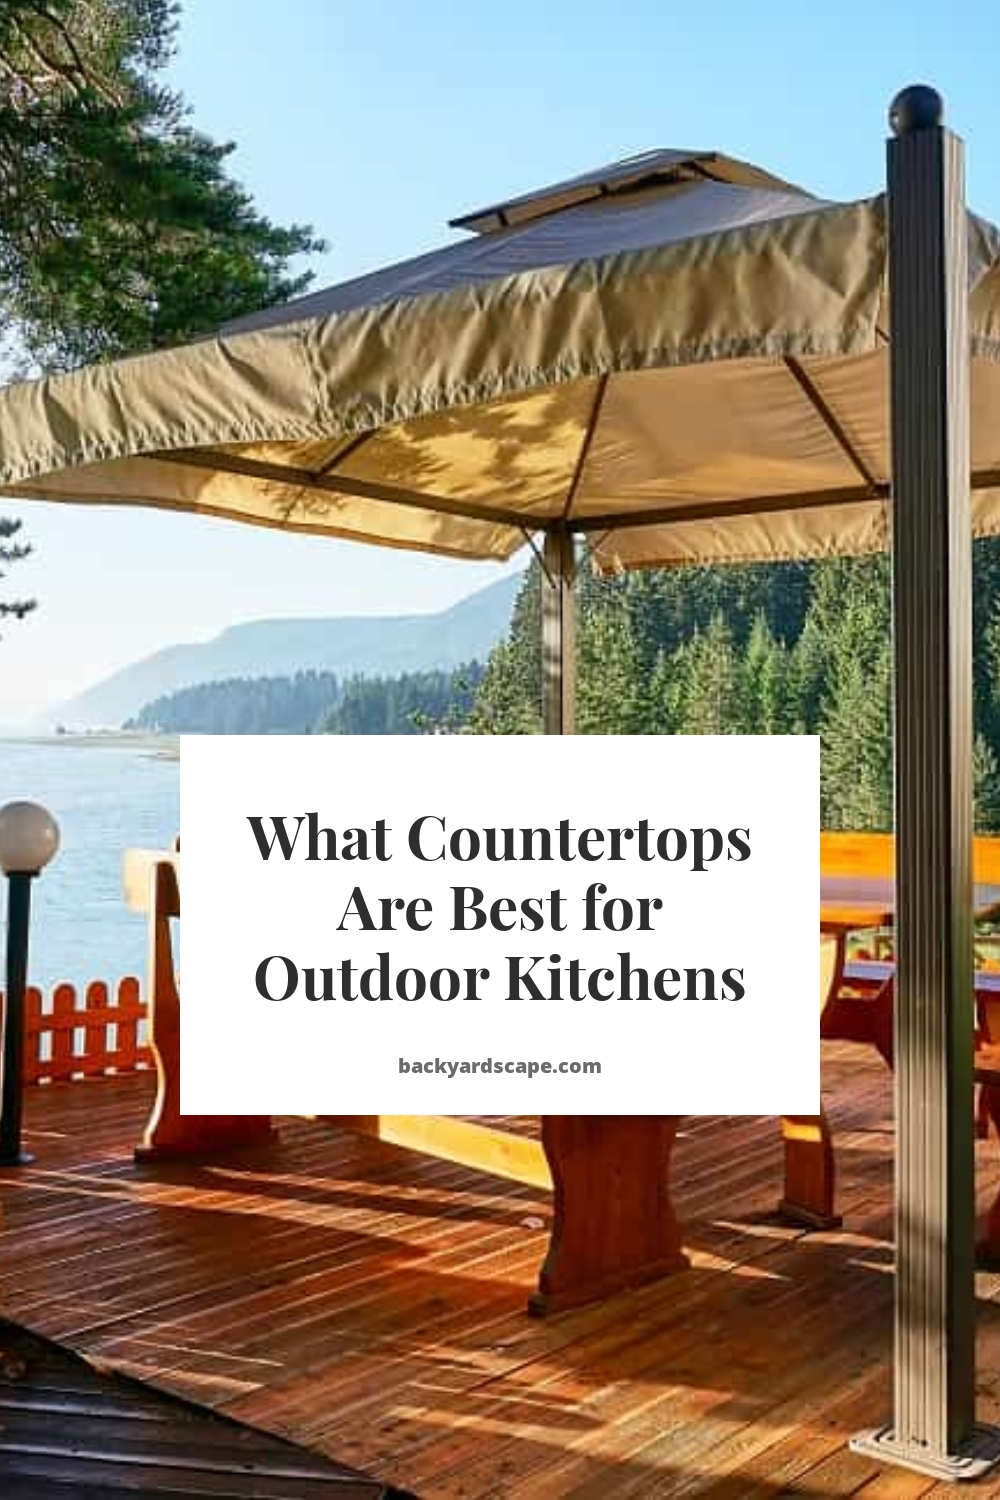 What Countertops Are Best for Outdoor Kitchens